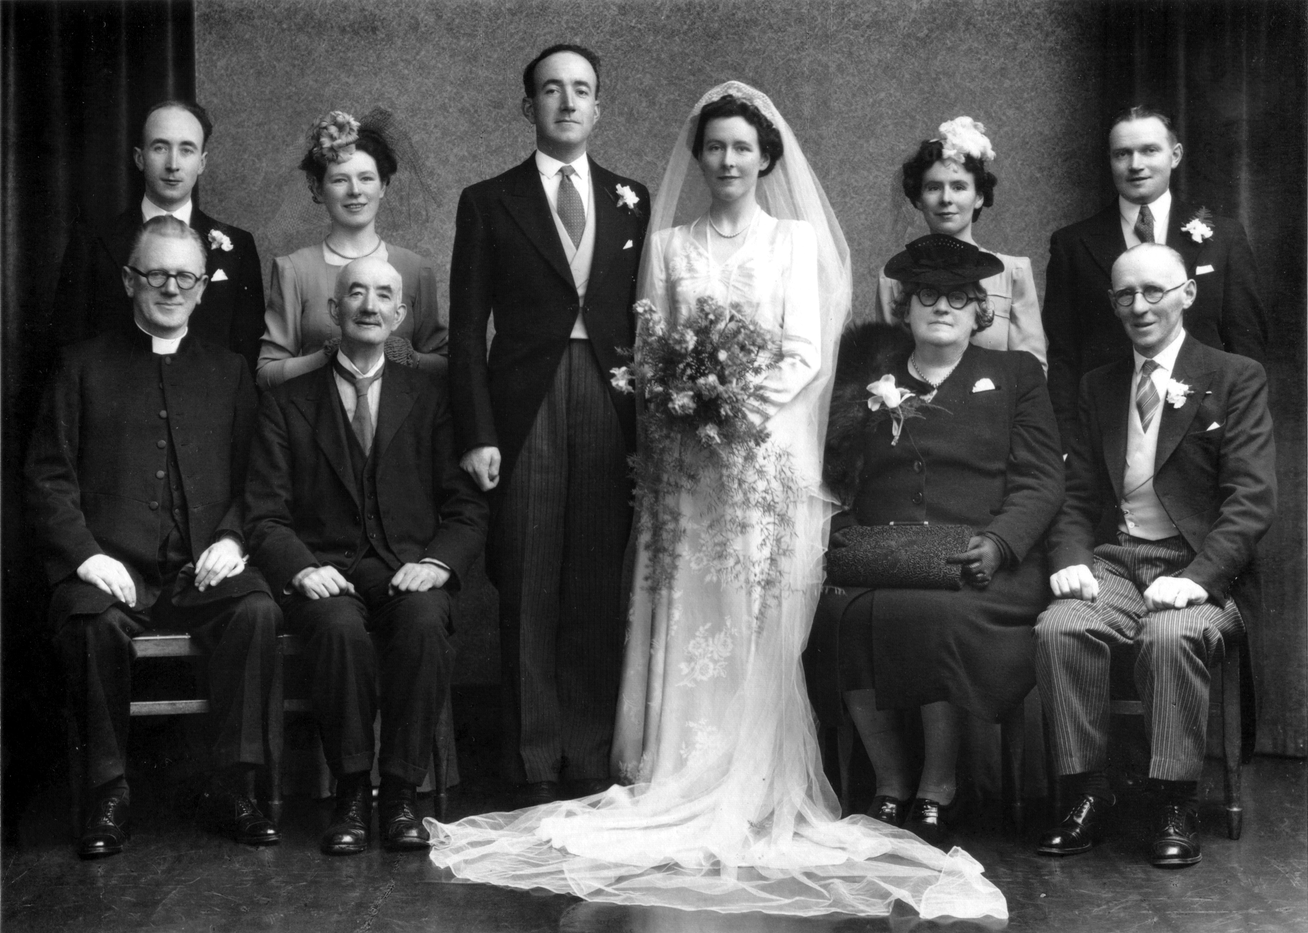 Standing (L to R): Philip Murray, Mairead O'Kane, Frank, Eileen, Josephine O'Kane, Gerald McGuinness Sitting (L to R): Rev. Joseph  Murphy, Charles Murray, Ellie O'Kane, Hugh O'Kane